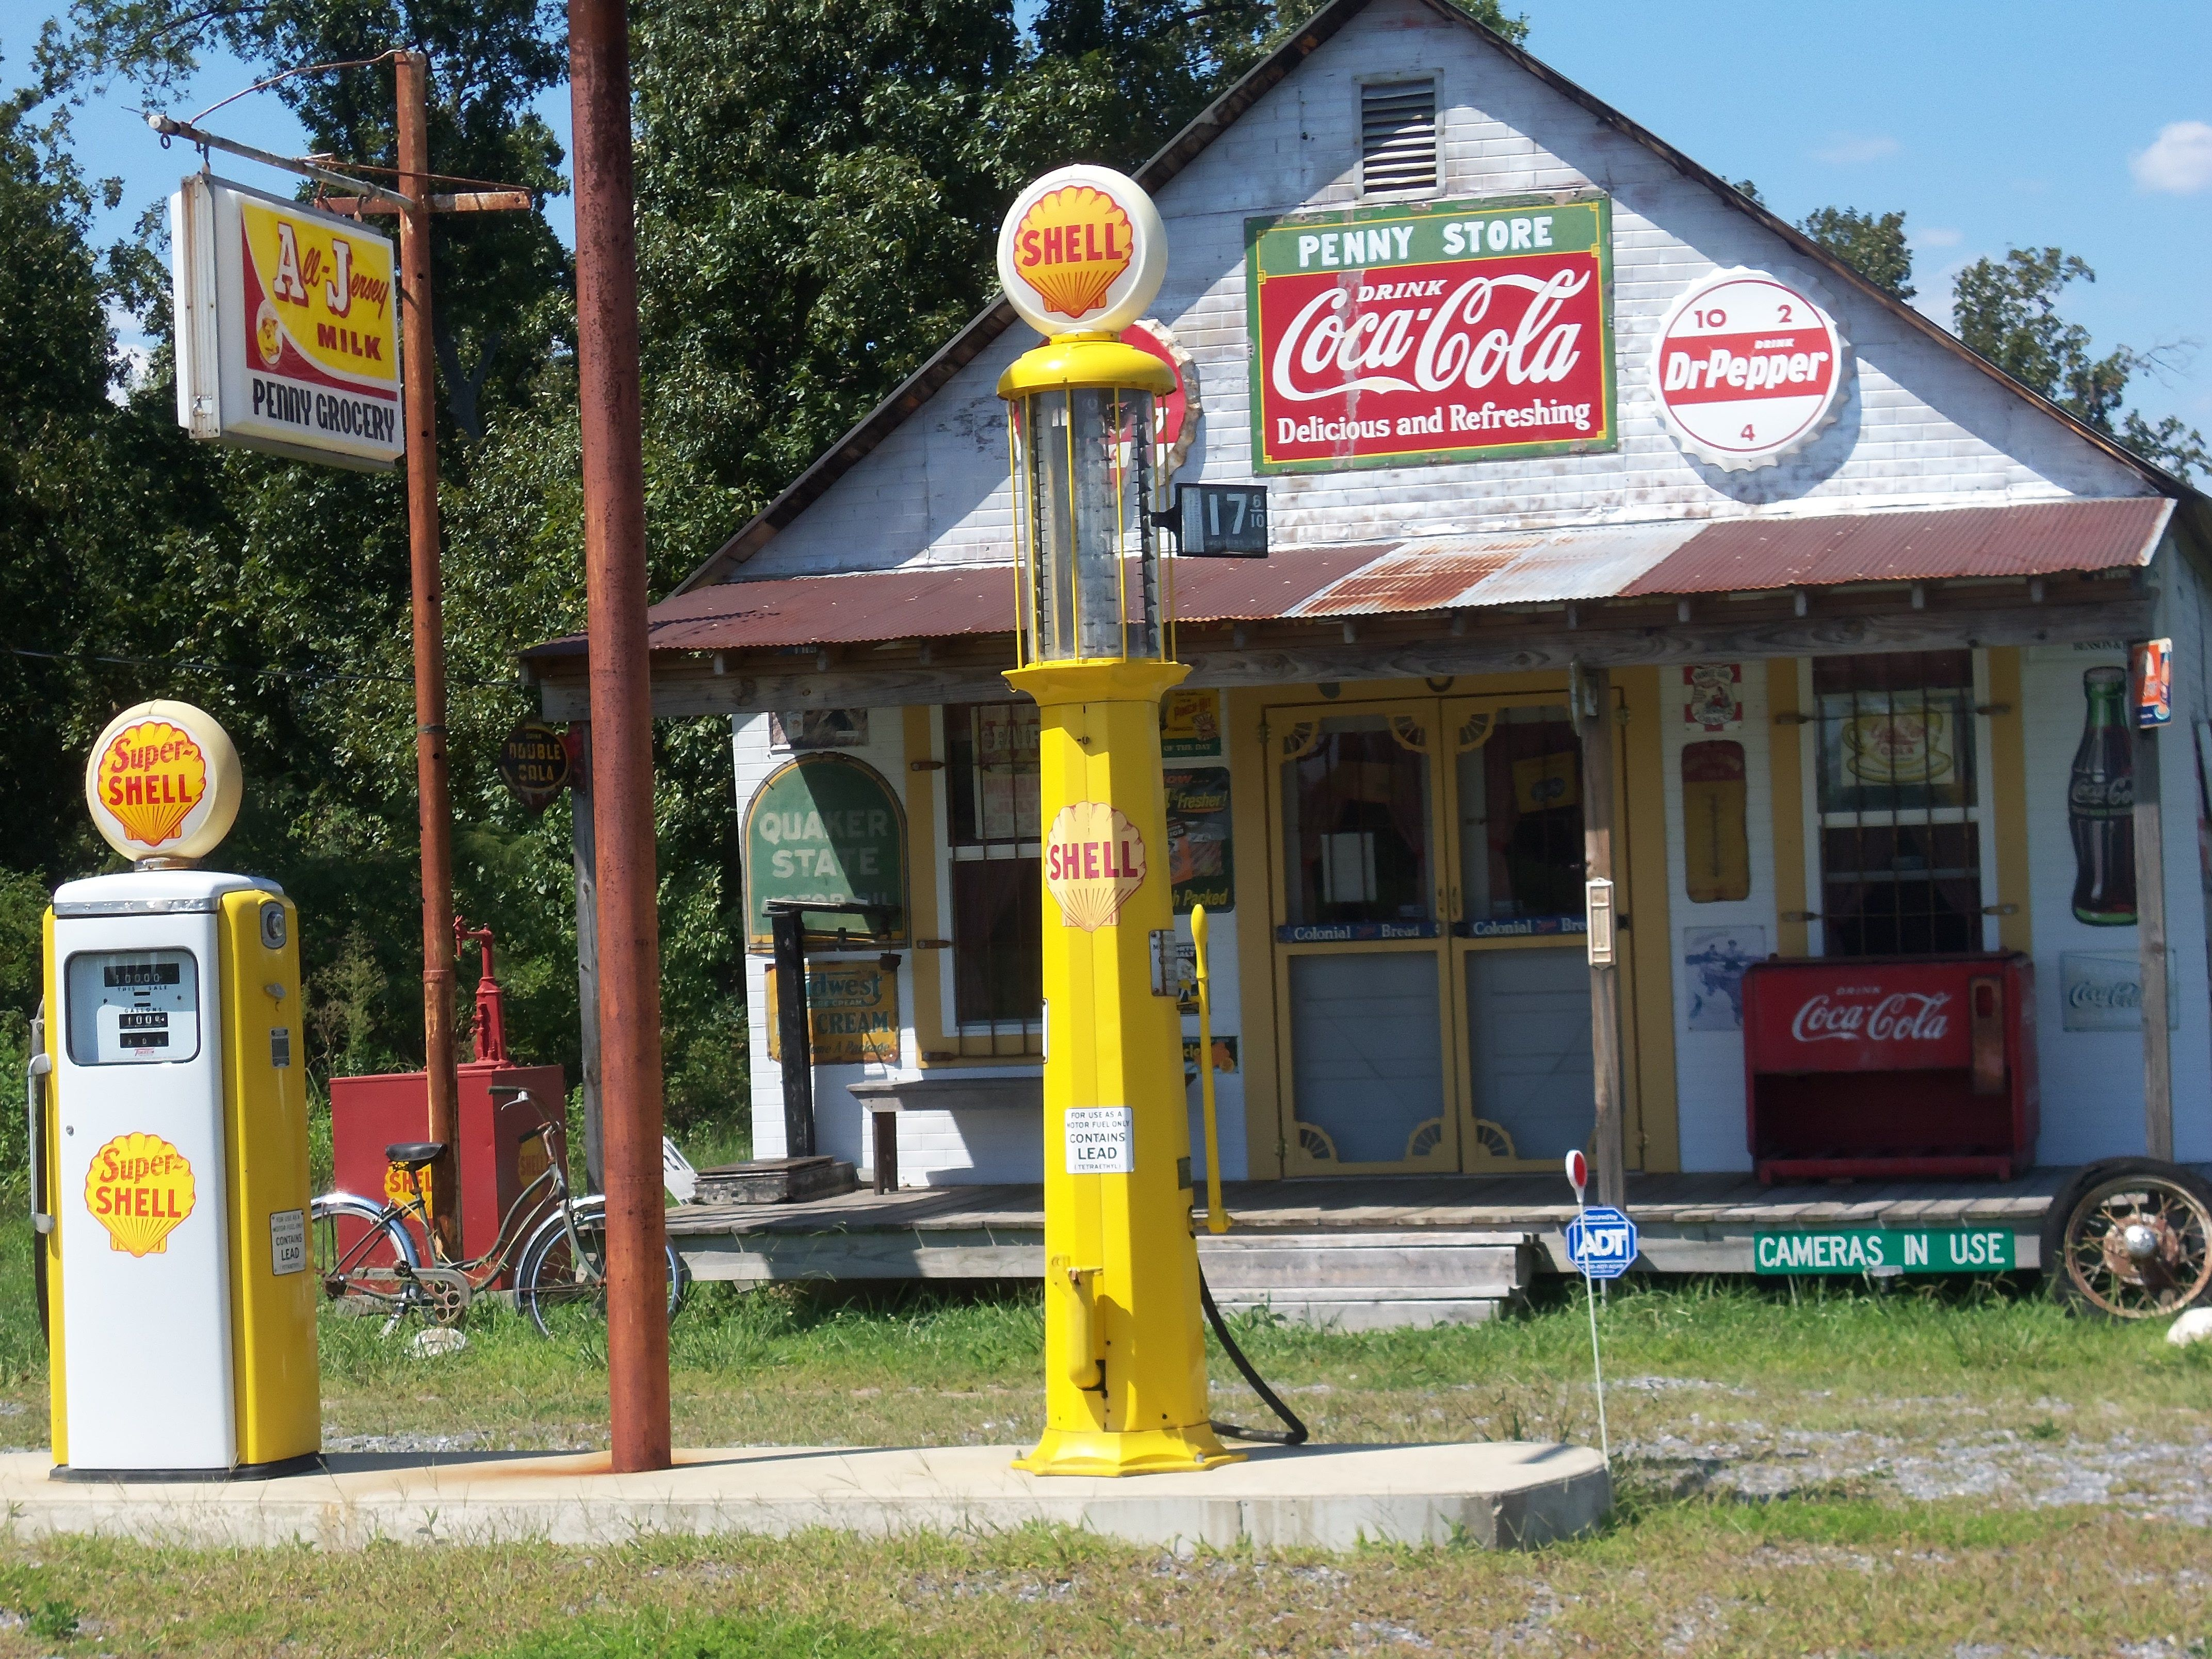 Old Man S Cave General Store : This is a neat old country grocery store located in